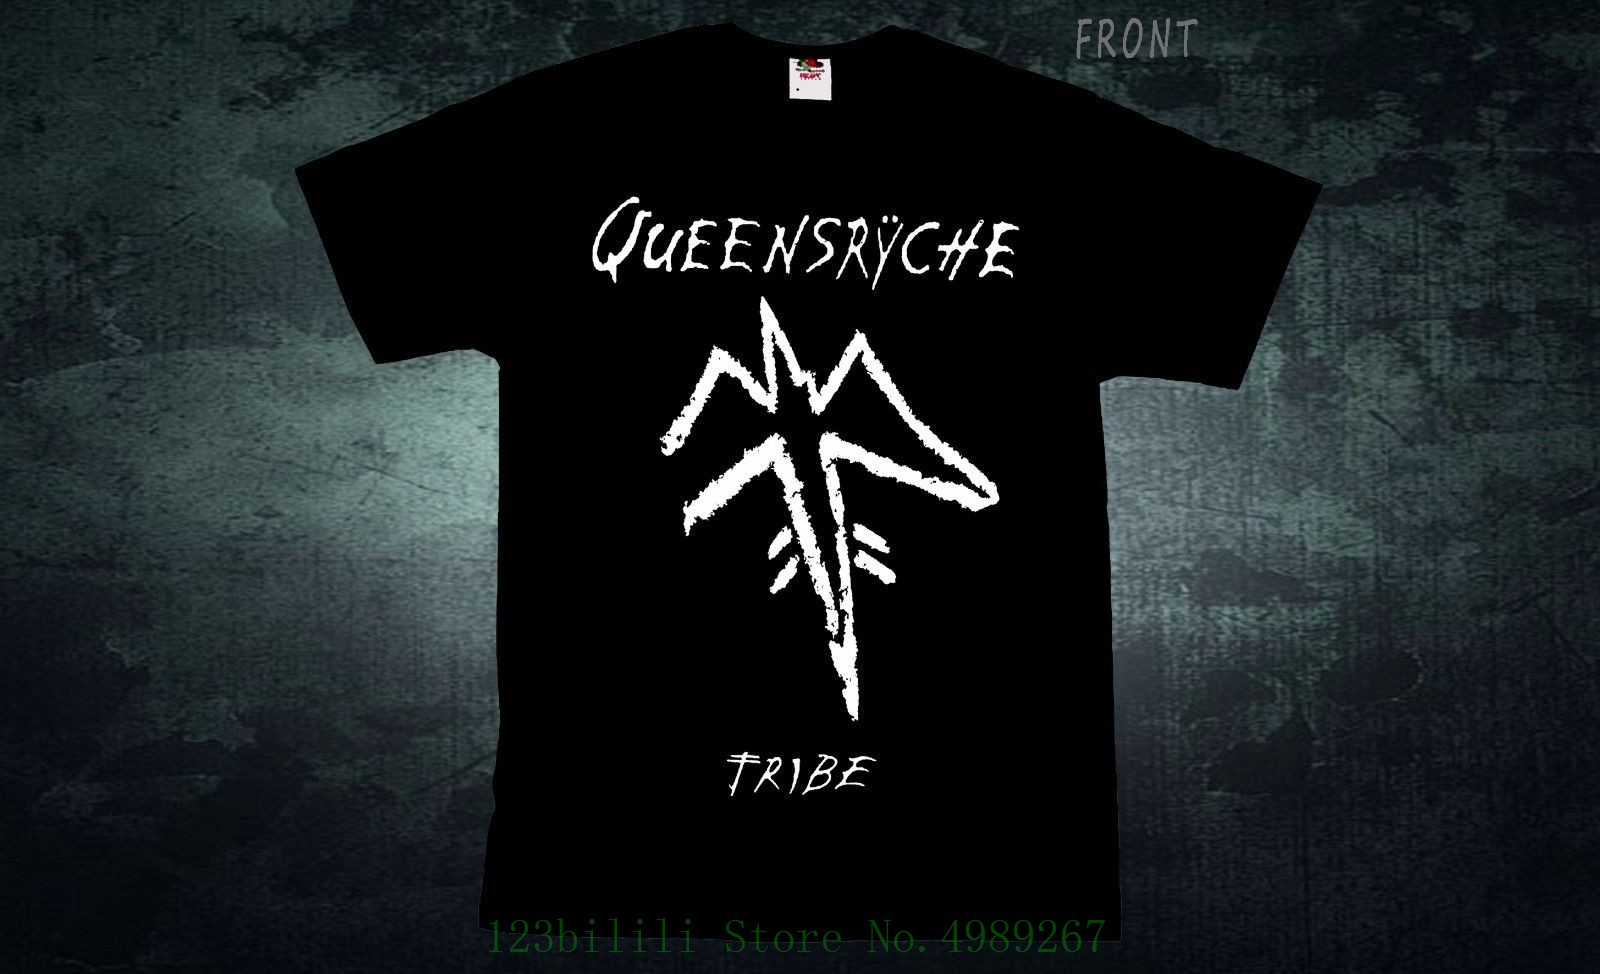 Queensryche - Tribe - Heavy Metal - Crimson Glory - <font><b>Ratt</b></font> , <font><b>T</b></font> _ <font><b>Shirt</b></font> , Sizes : S To 6xl 2019 Latest <font><b>Men</b></font> <font><b>T</b></font> <font><b>Shirt</b></font> Fashion image